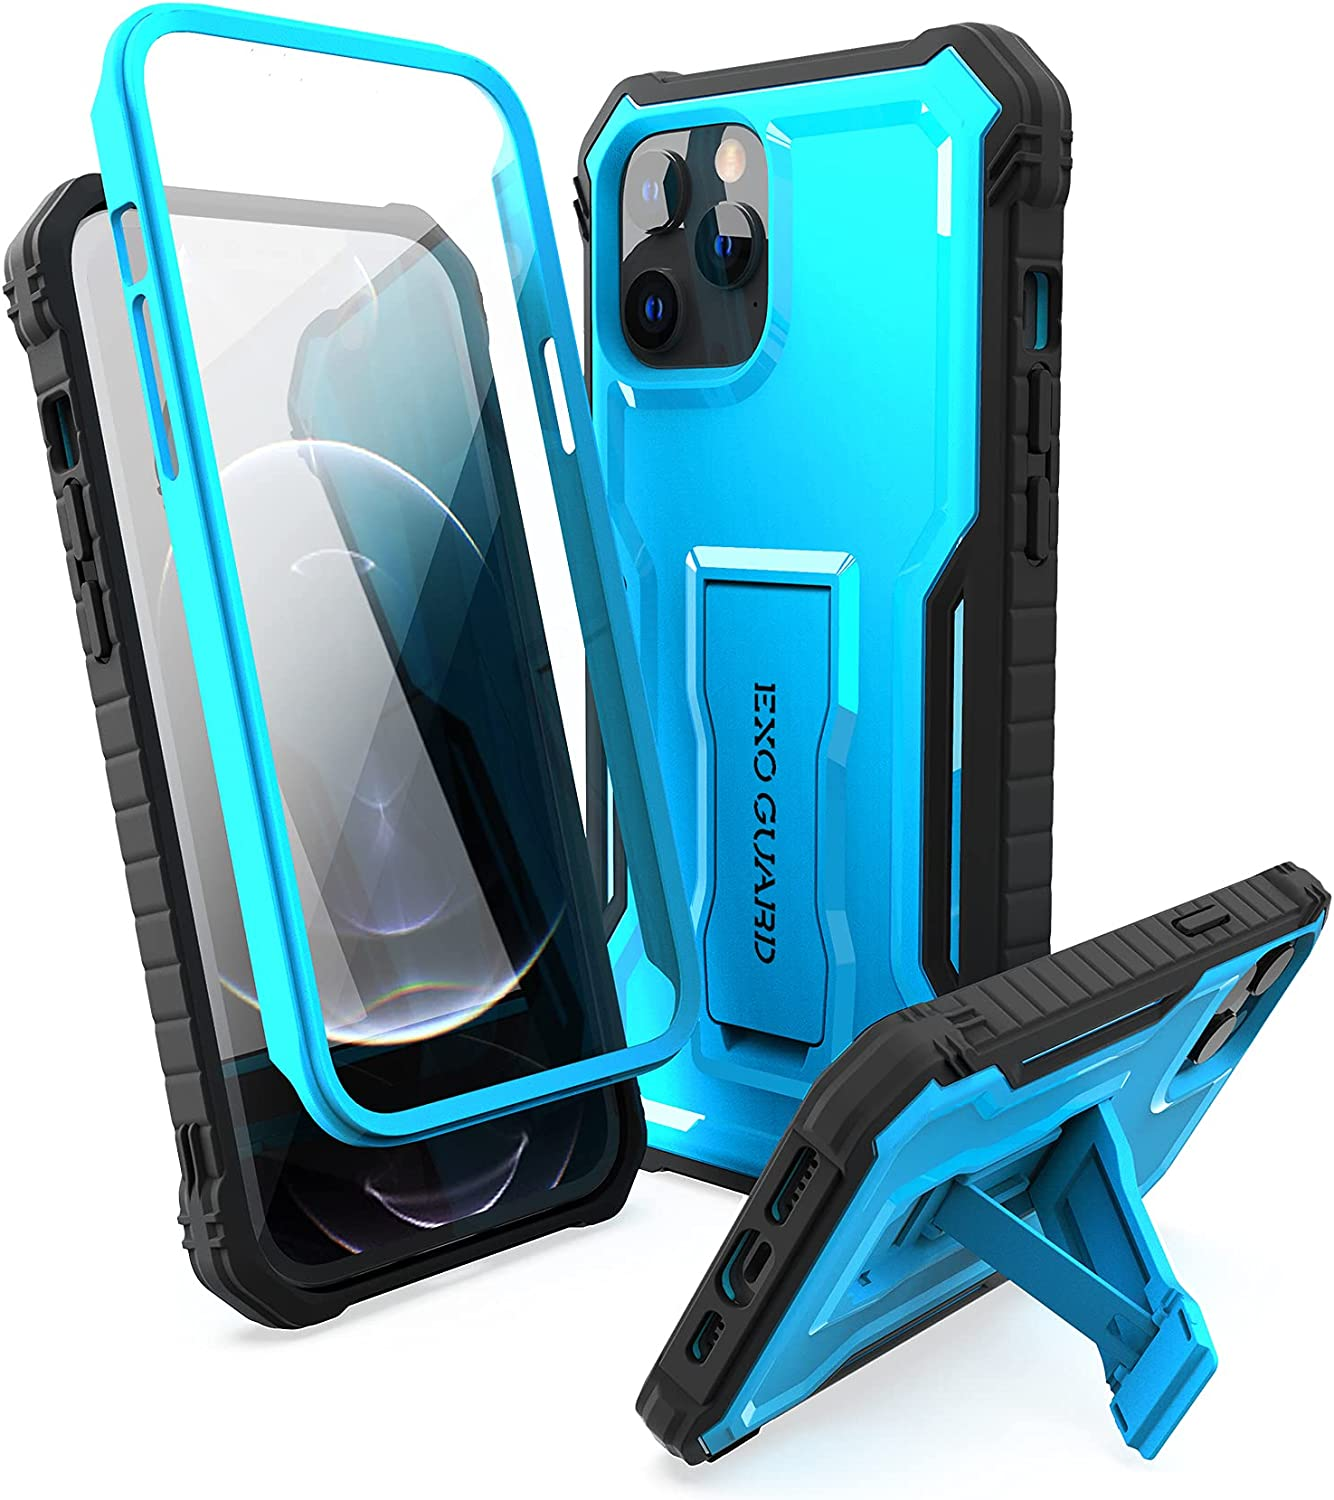 ExoGuard Compatible with iPhone 12 Pro Max Case, Rubber Shockproof Full-Body Cover Case Built-in Screen Protector with Kickstand for iPhone 12 Pro Max 6.7 inch Phone (Blue)